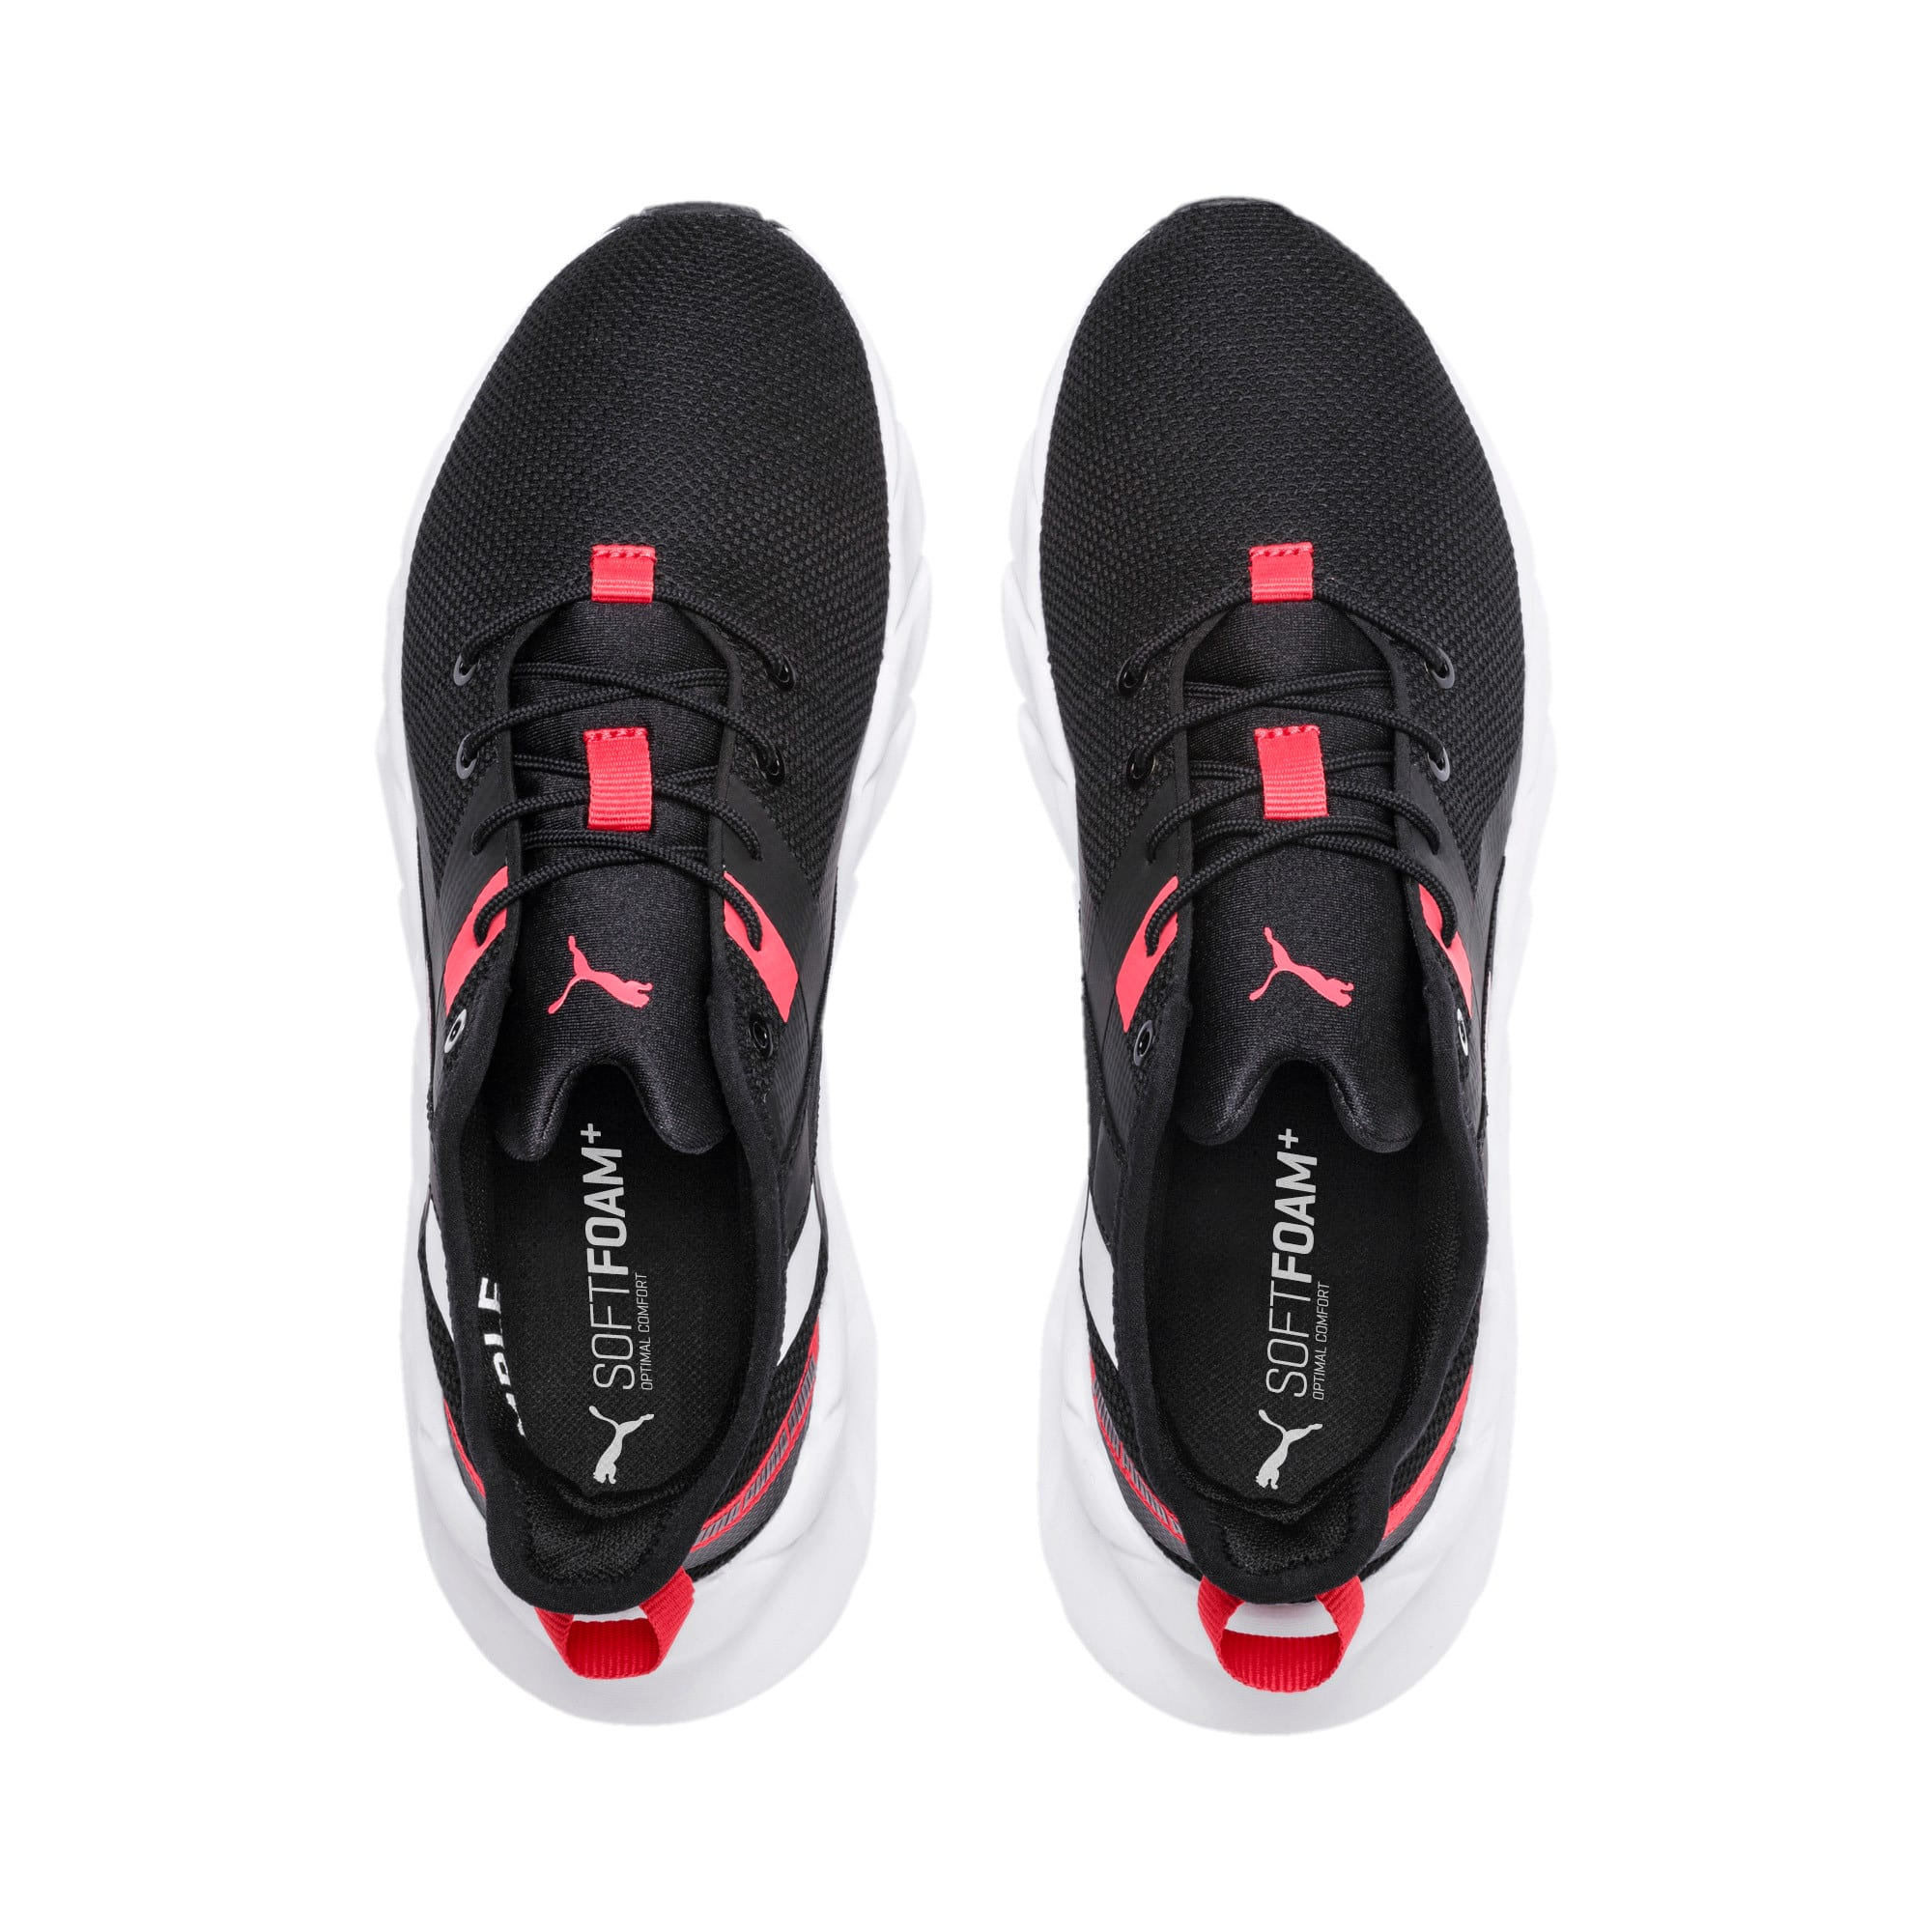 Thumbnail 6 of Weave XT Youth Trainers, Black-White-Calypso Coral, medium-IND